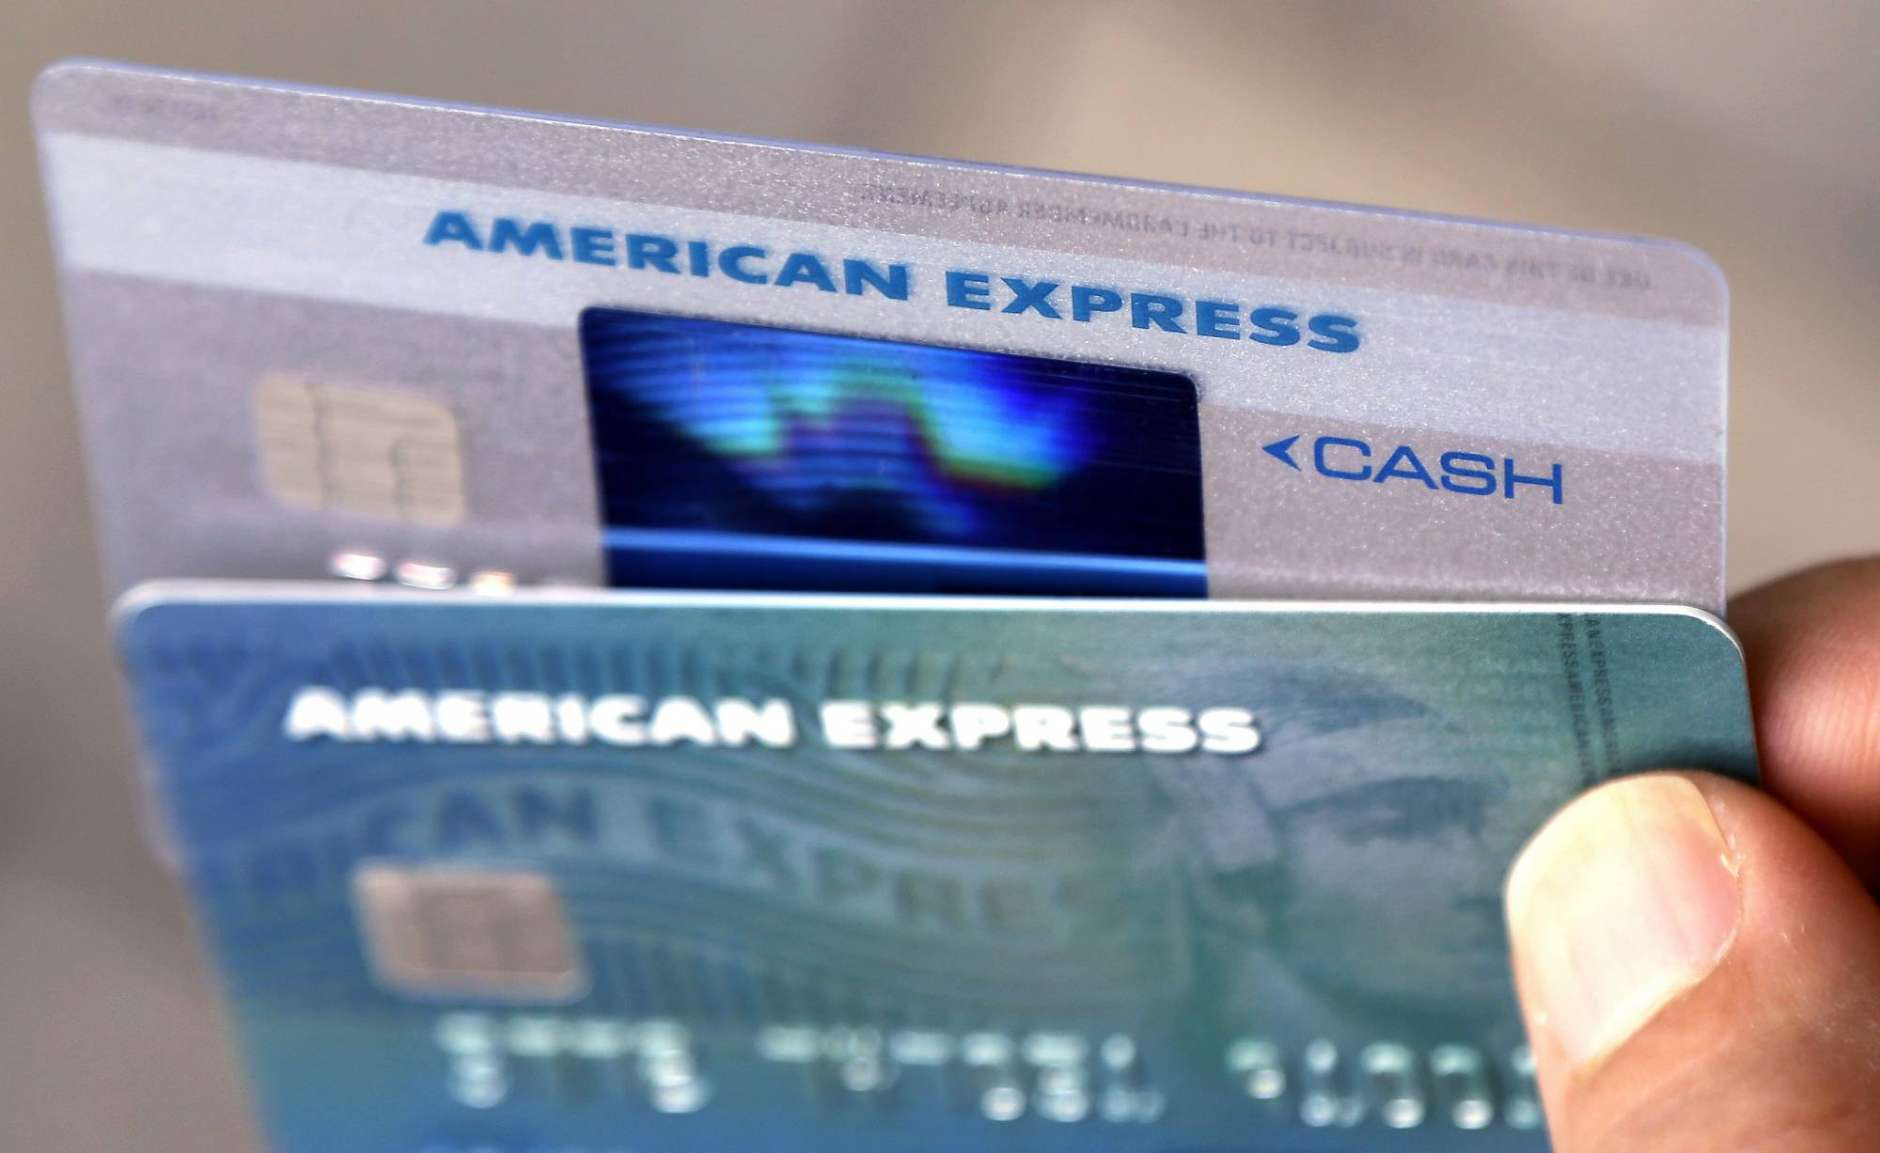 American Express posts $1.2 billion loss due to new tax law | WTOP